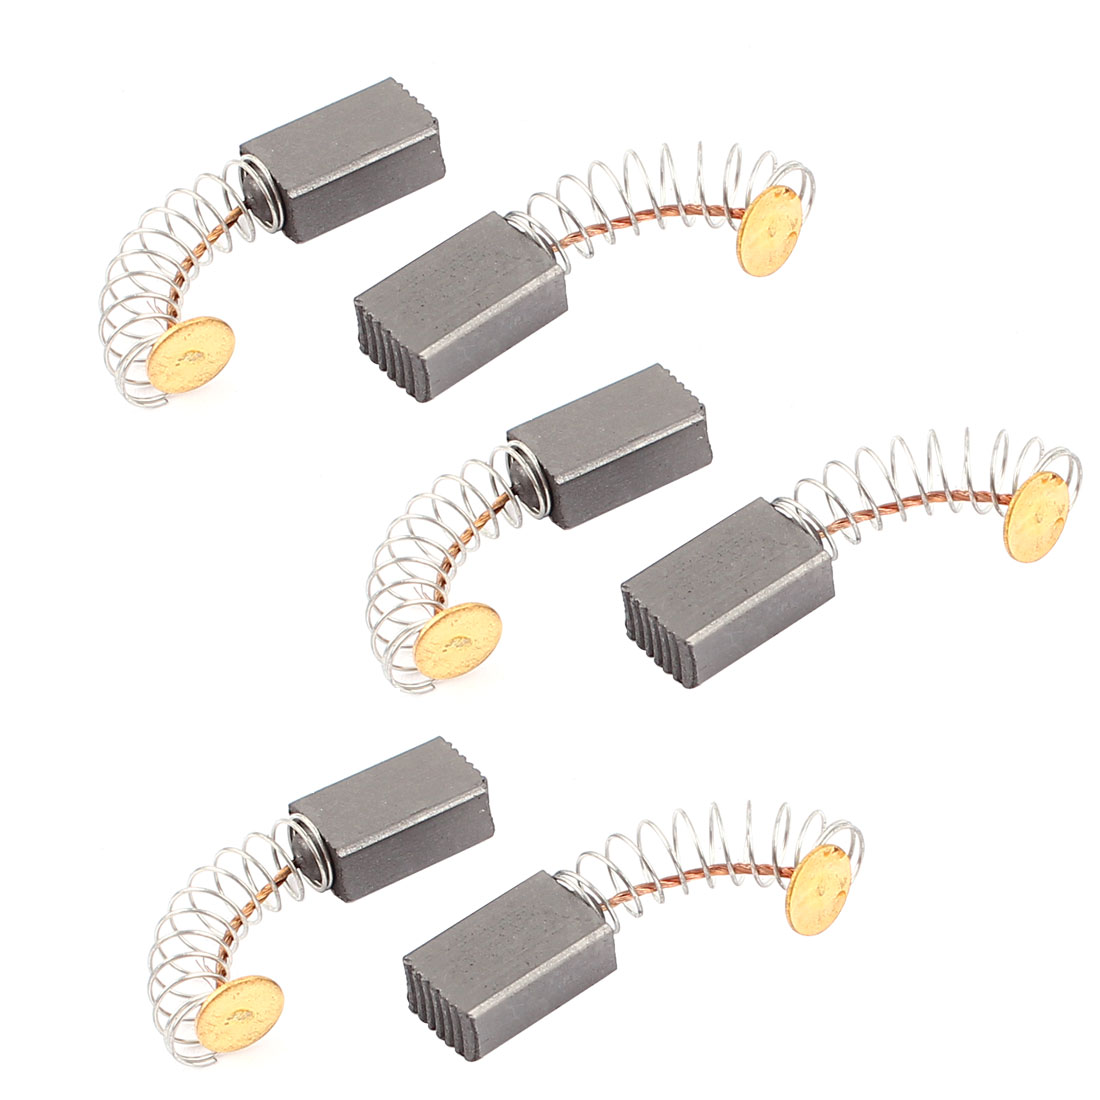 6 Pcs Replacement Electric Motor Carbon Brushes 12mm x 8mm x 5mm for Motors